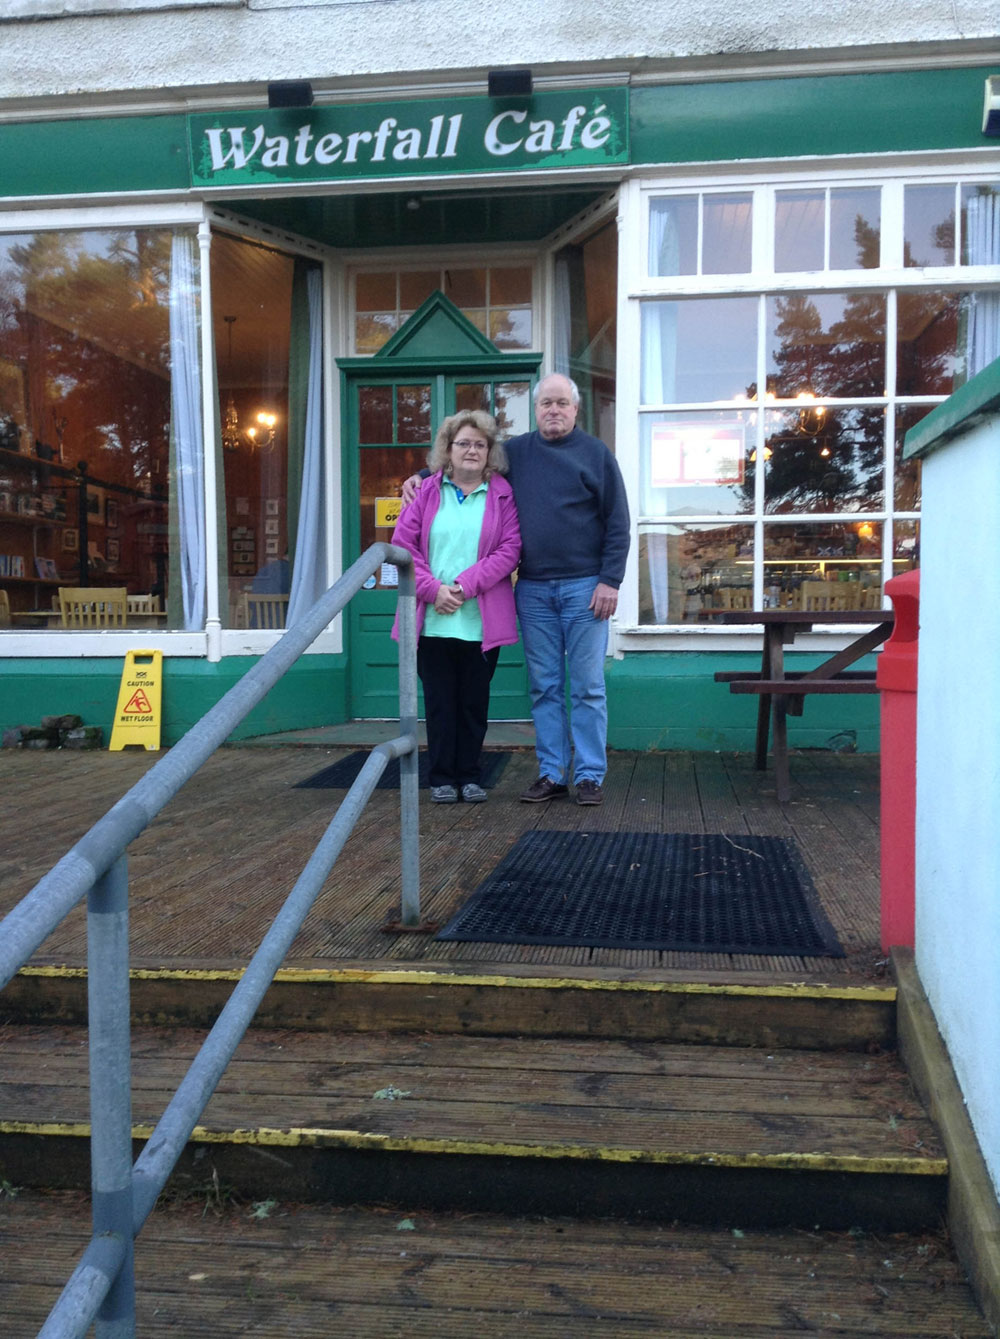 Simon and Jan Hargreaves run the Waterfall Cafe in Foyers